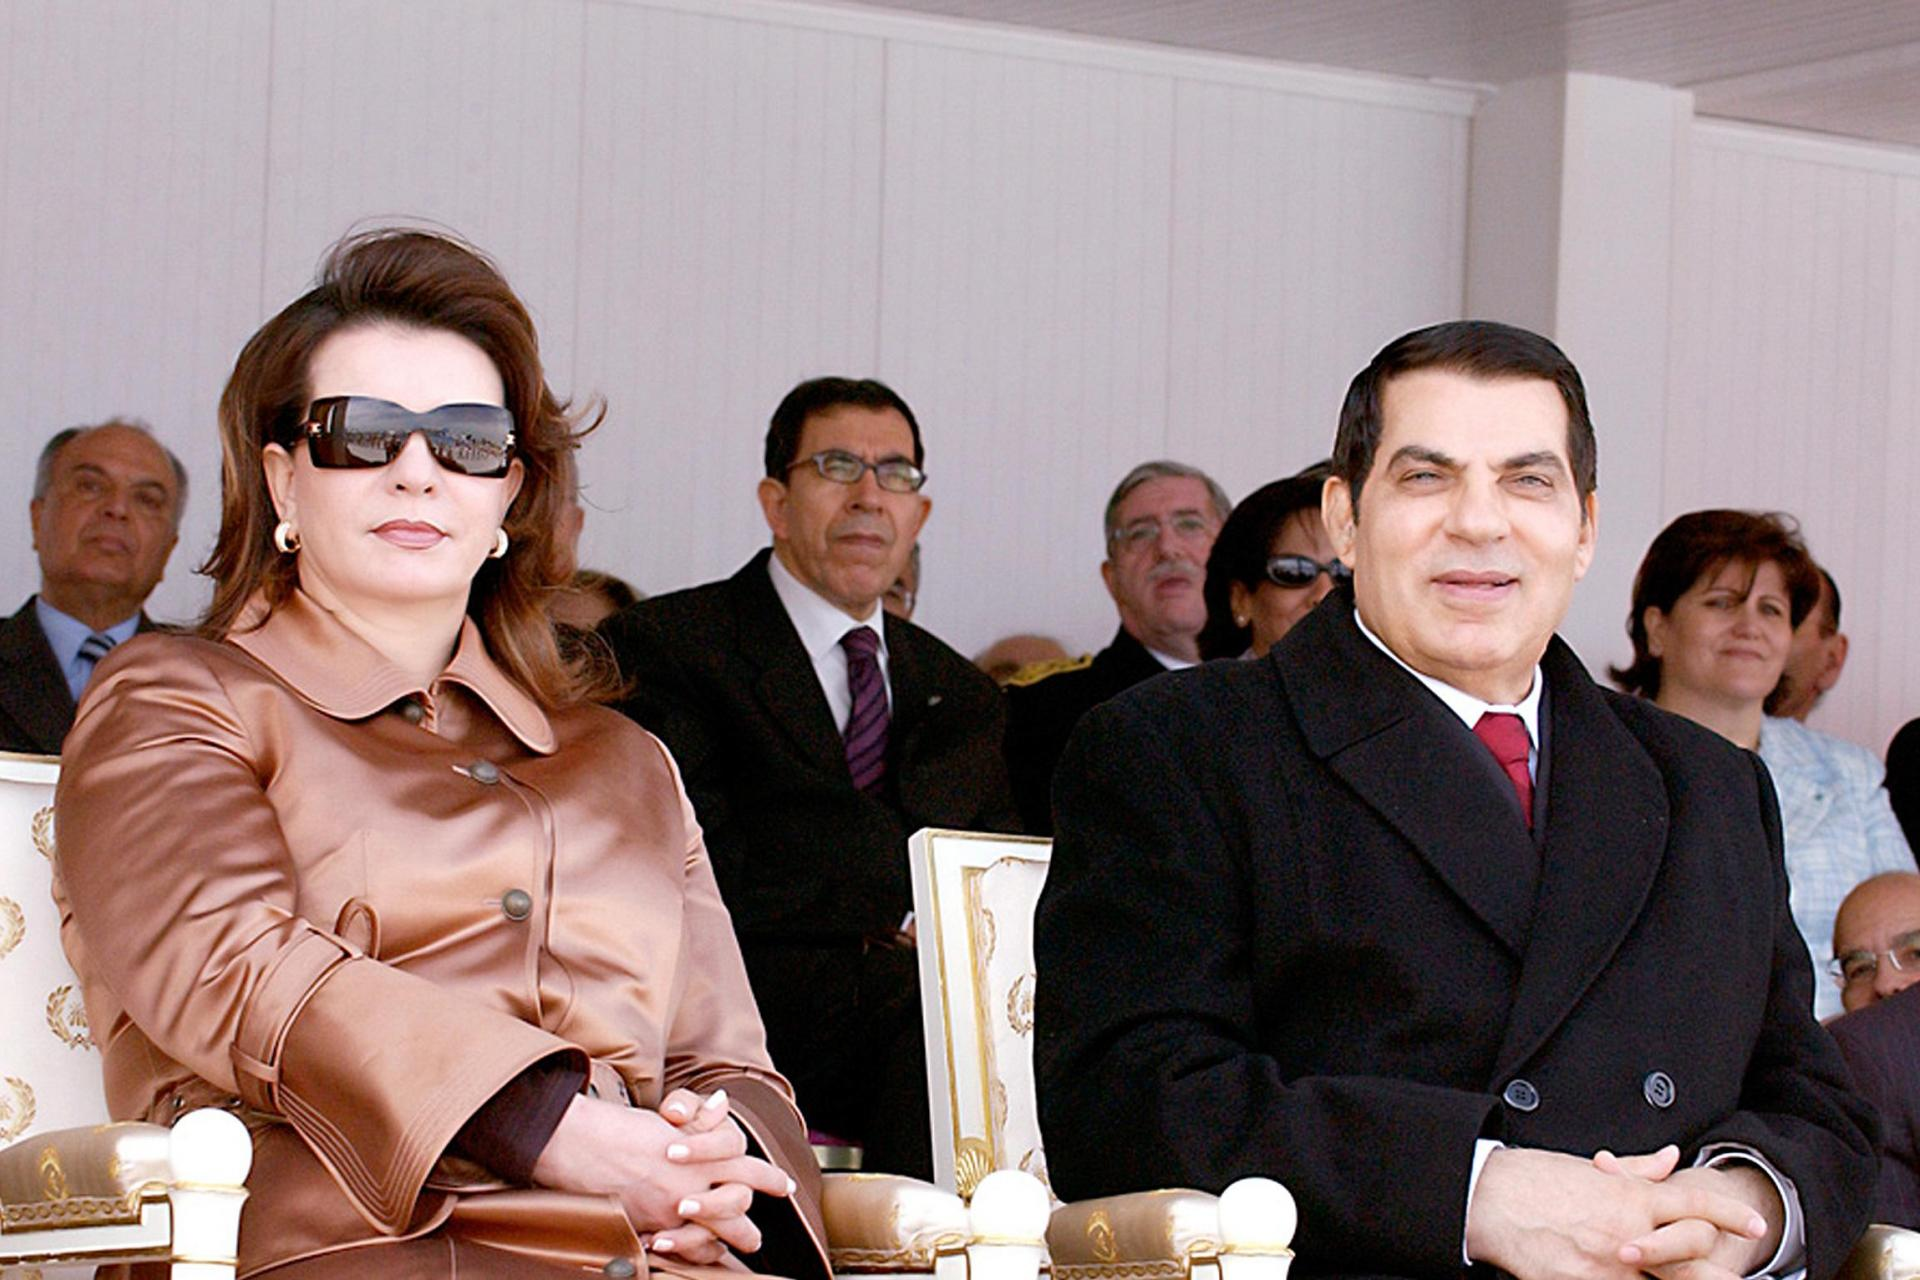 In this file photo taken on March 21, 2006, Tunisian president Zine El-Abidine Ben Ali and his wife Leila attend at the parade during ceremonies for the 50th anniversary of Tunisia's independence. Photo: Tunisian Presidency / AFP